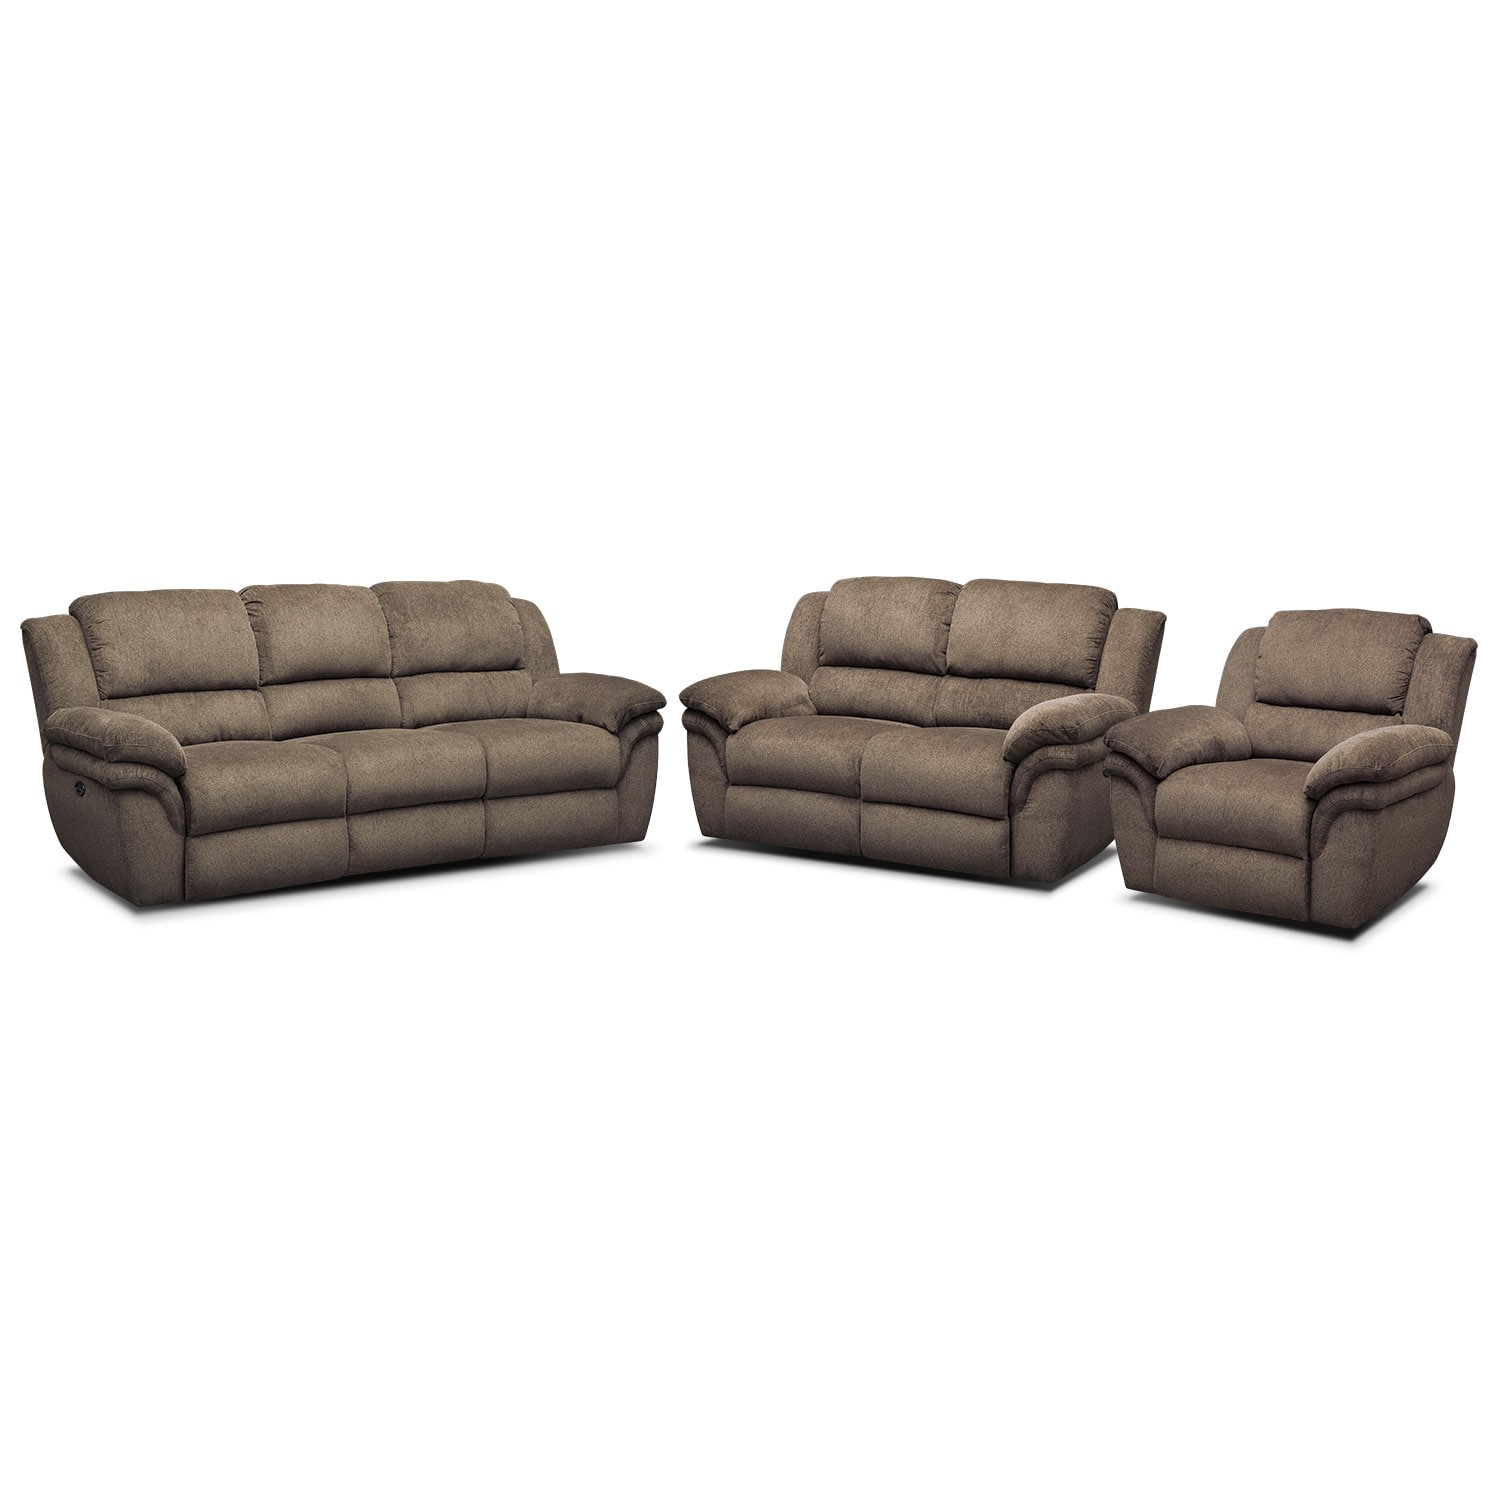 Living Room Furniture - Omni Mocha 3 Pc. Power Reclining Living Room